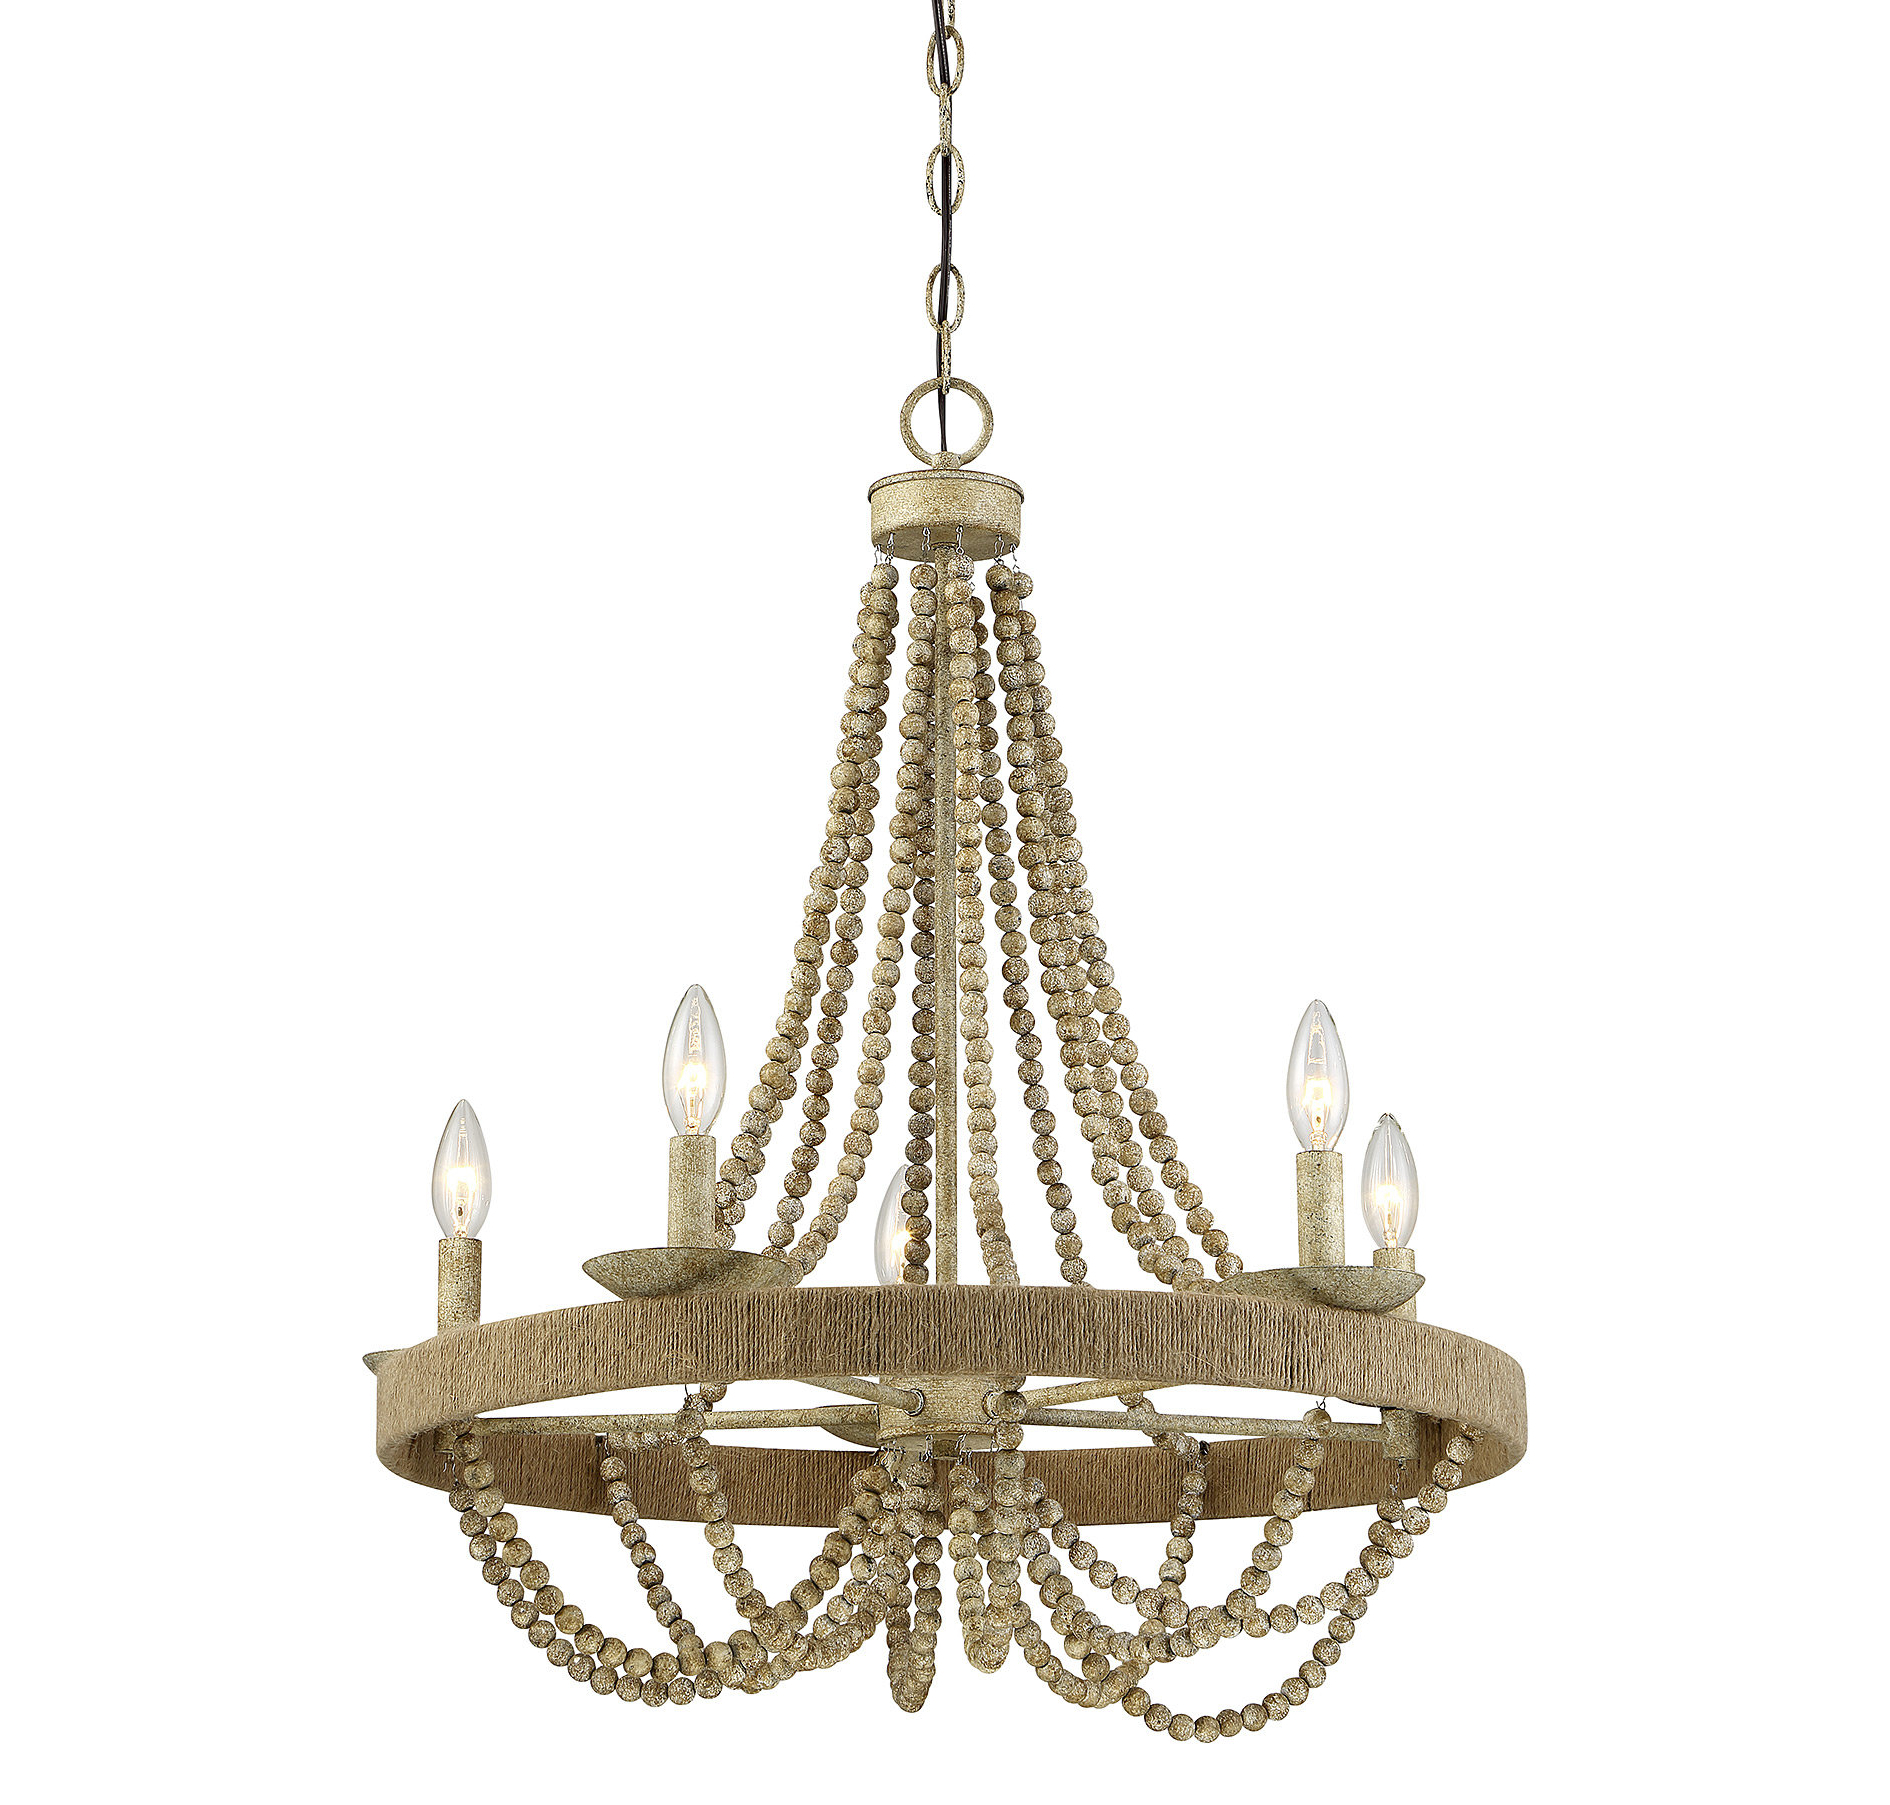 Duron 5 Light Empire Chandeliers Pertaining To Most Recent Duron 5 Light Empire Chandelier (Gallery 1 of 25)